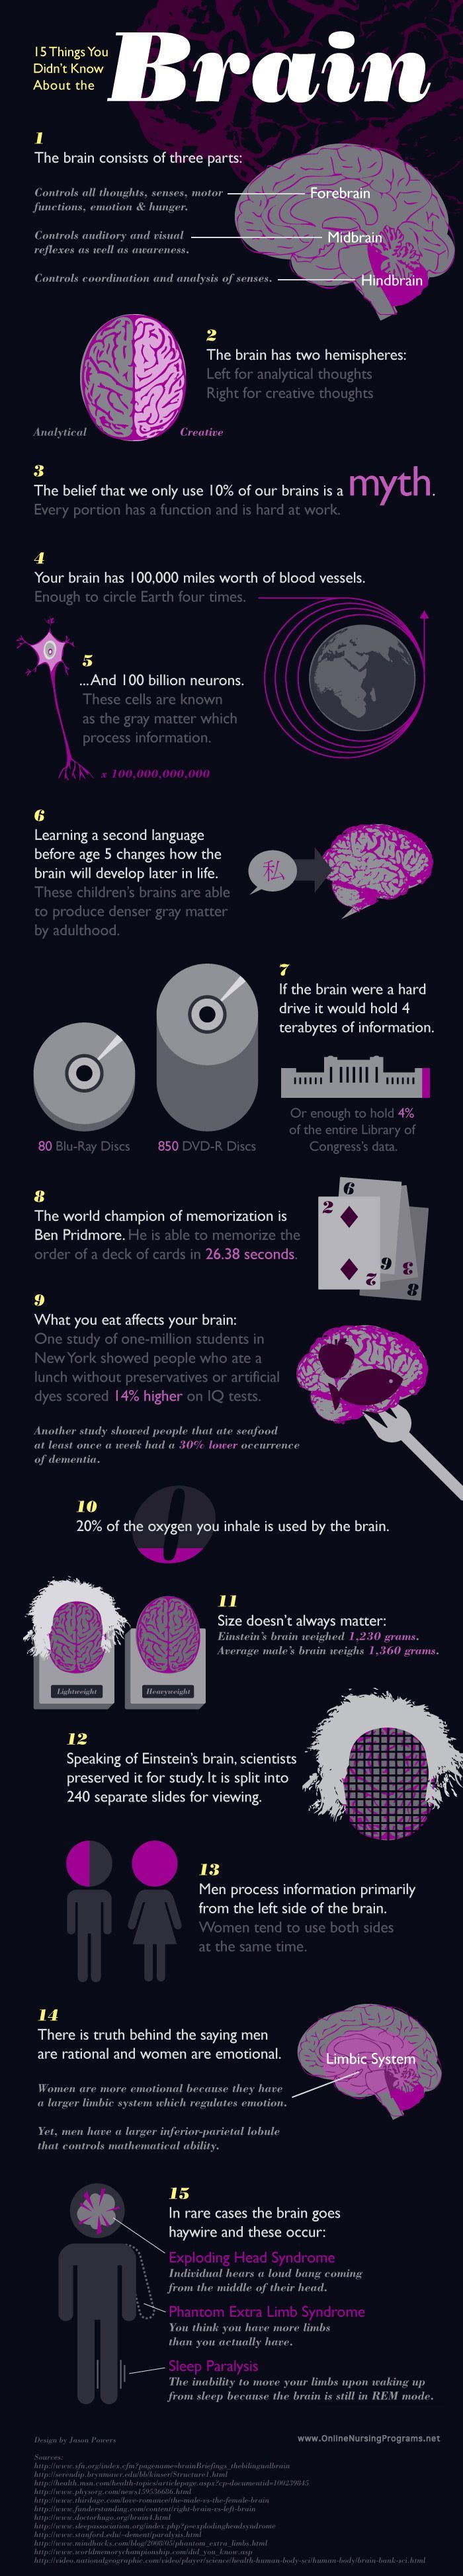 15 facts about the brain. The brain has over 100,000 miles of blood vessels! #brain